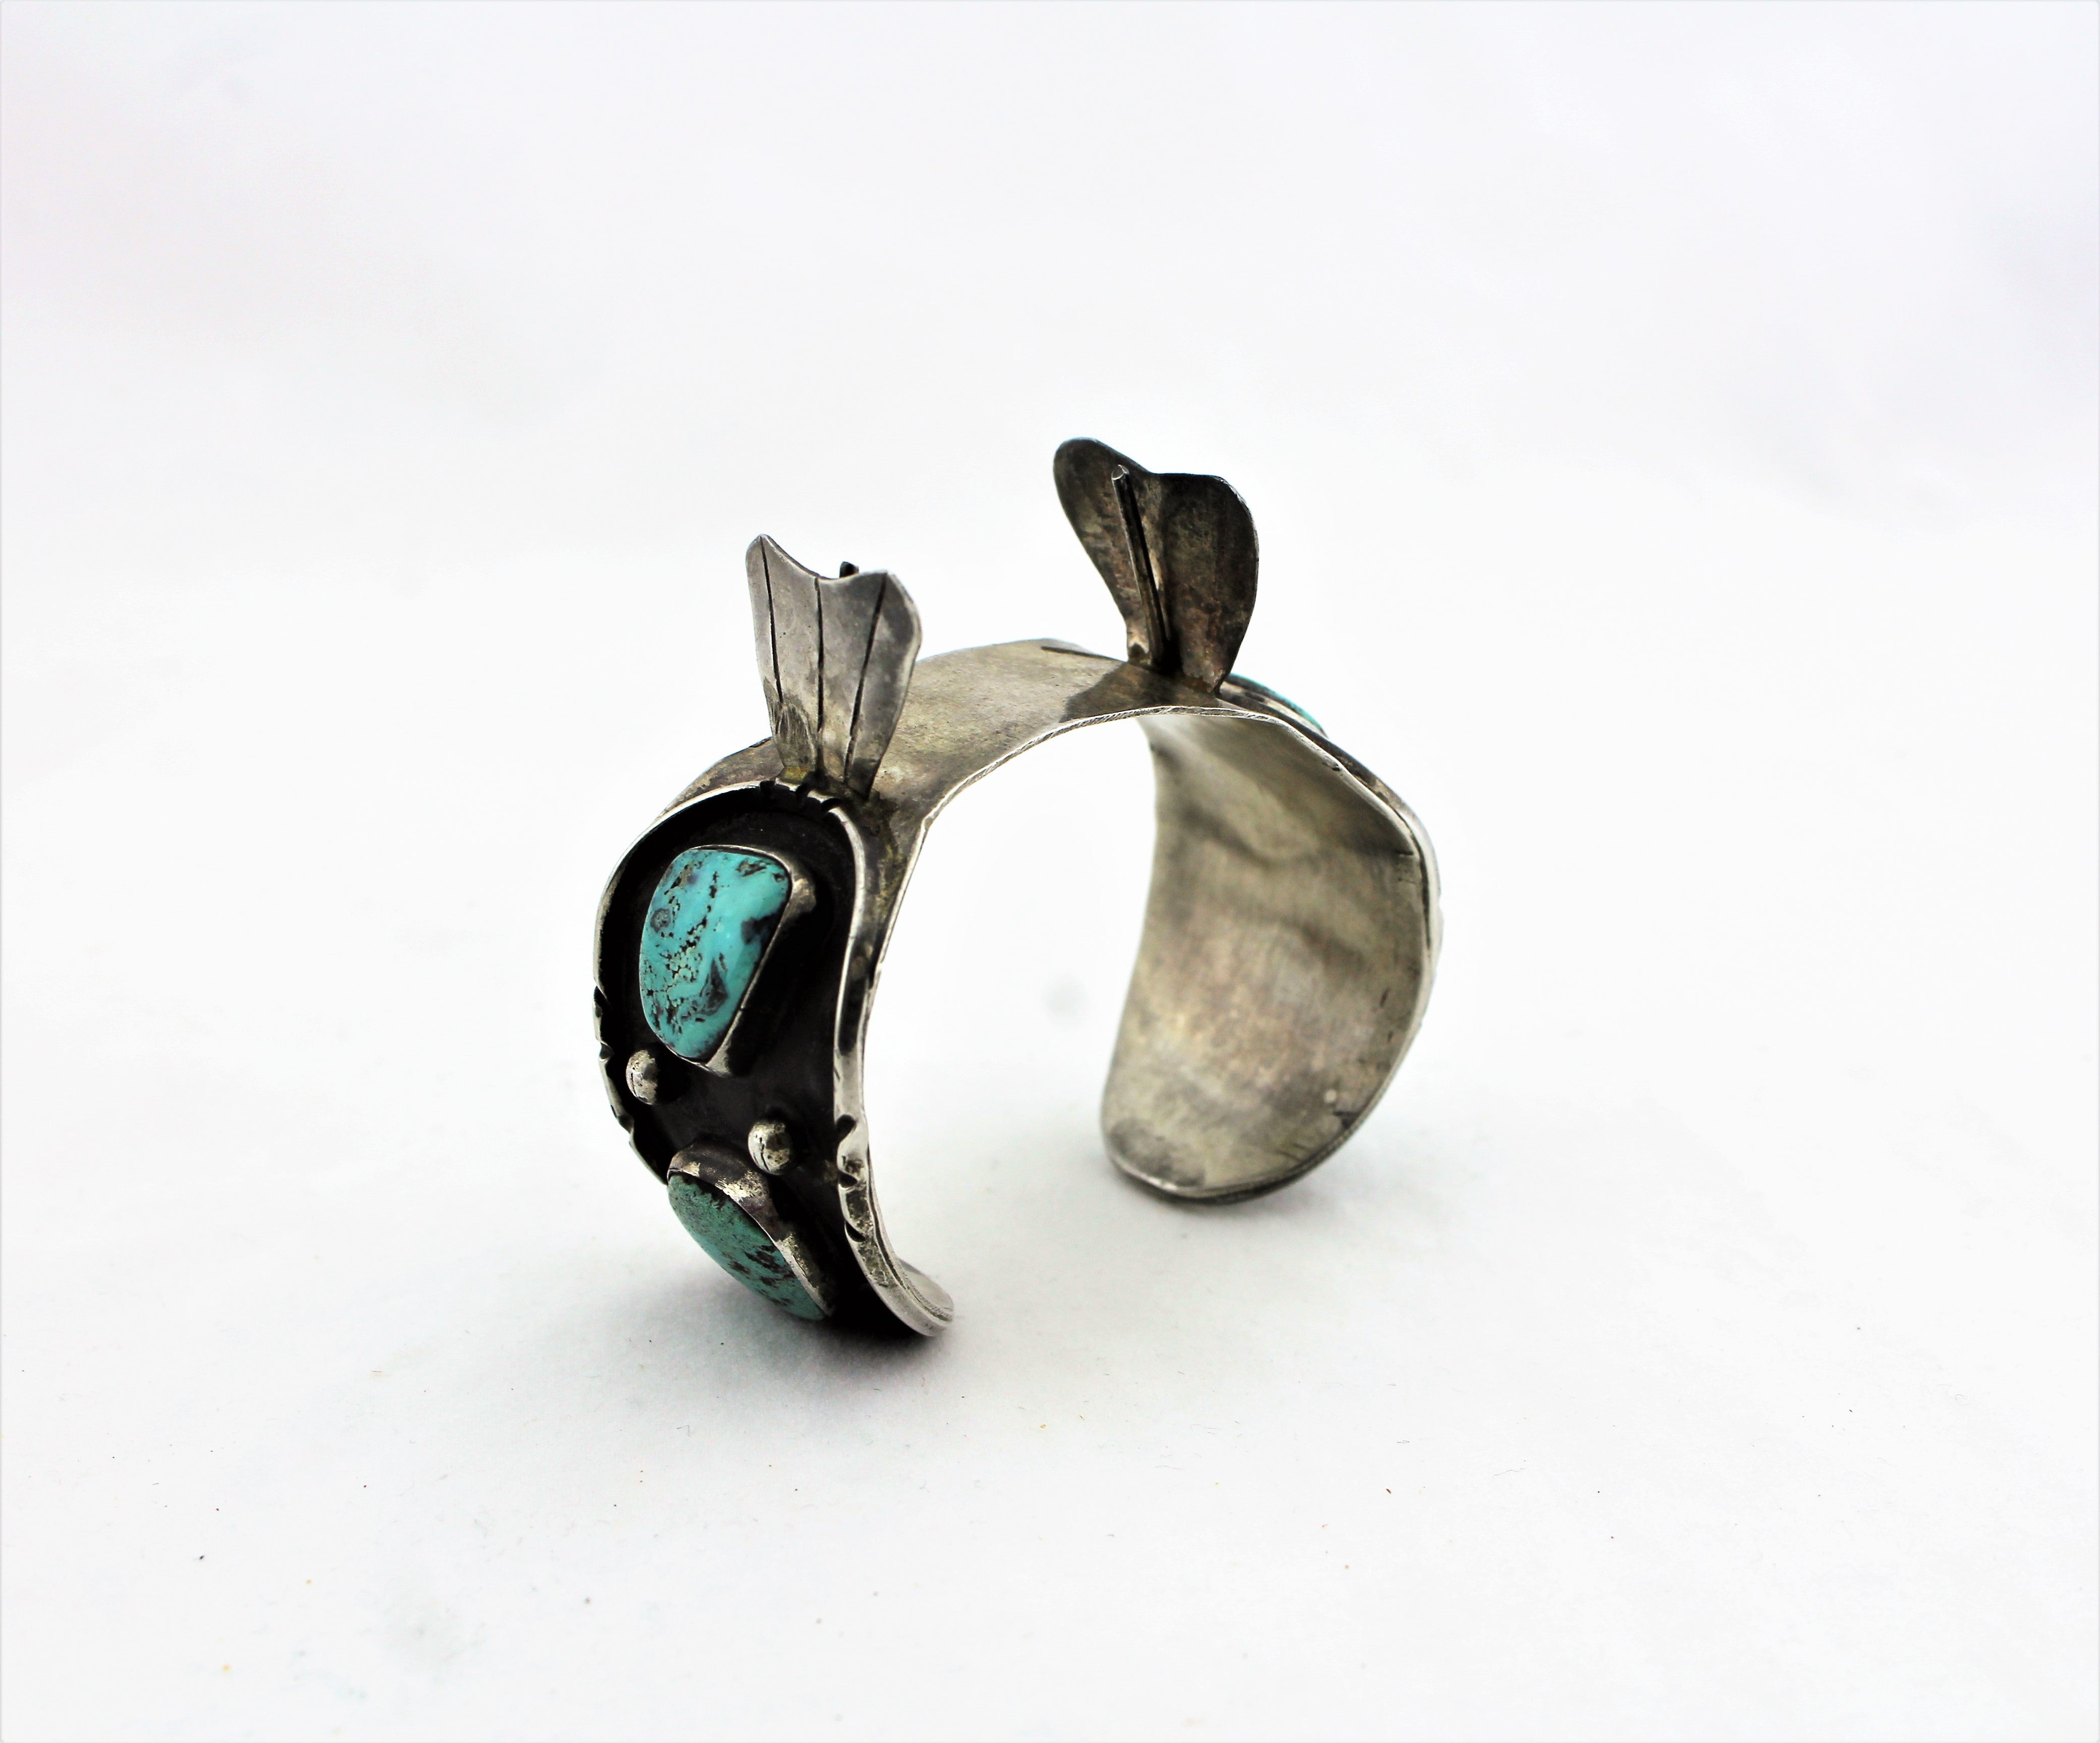 Antique Silver and Turquoise Watch Cuff